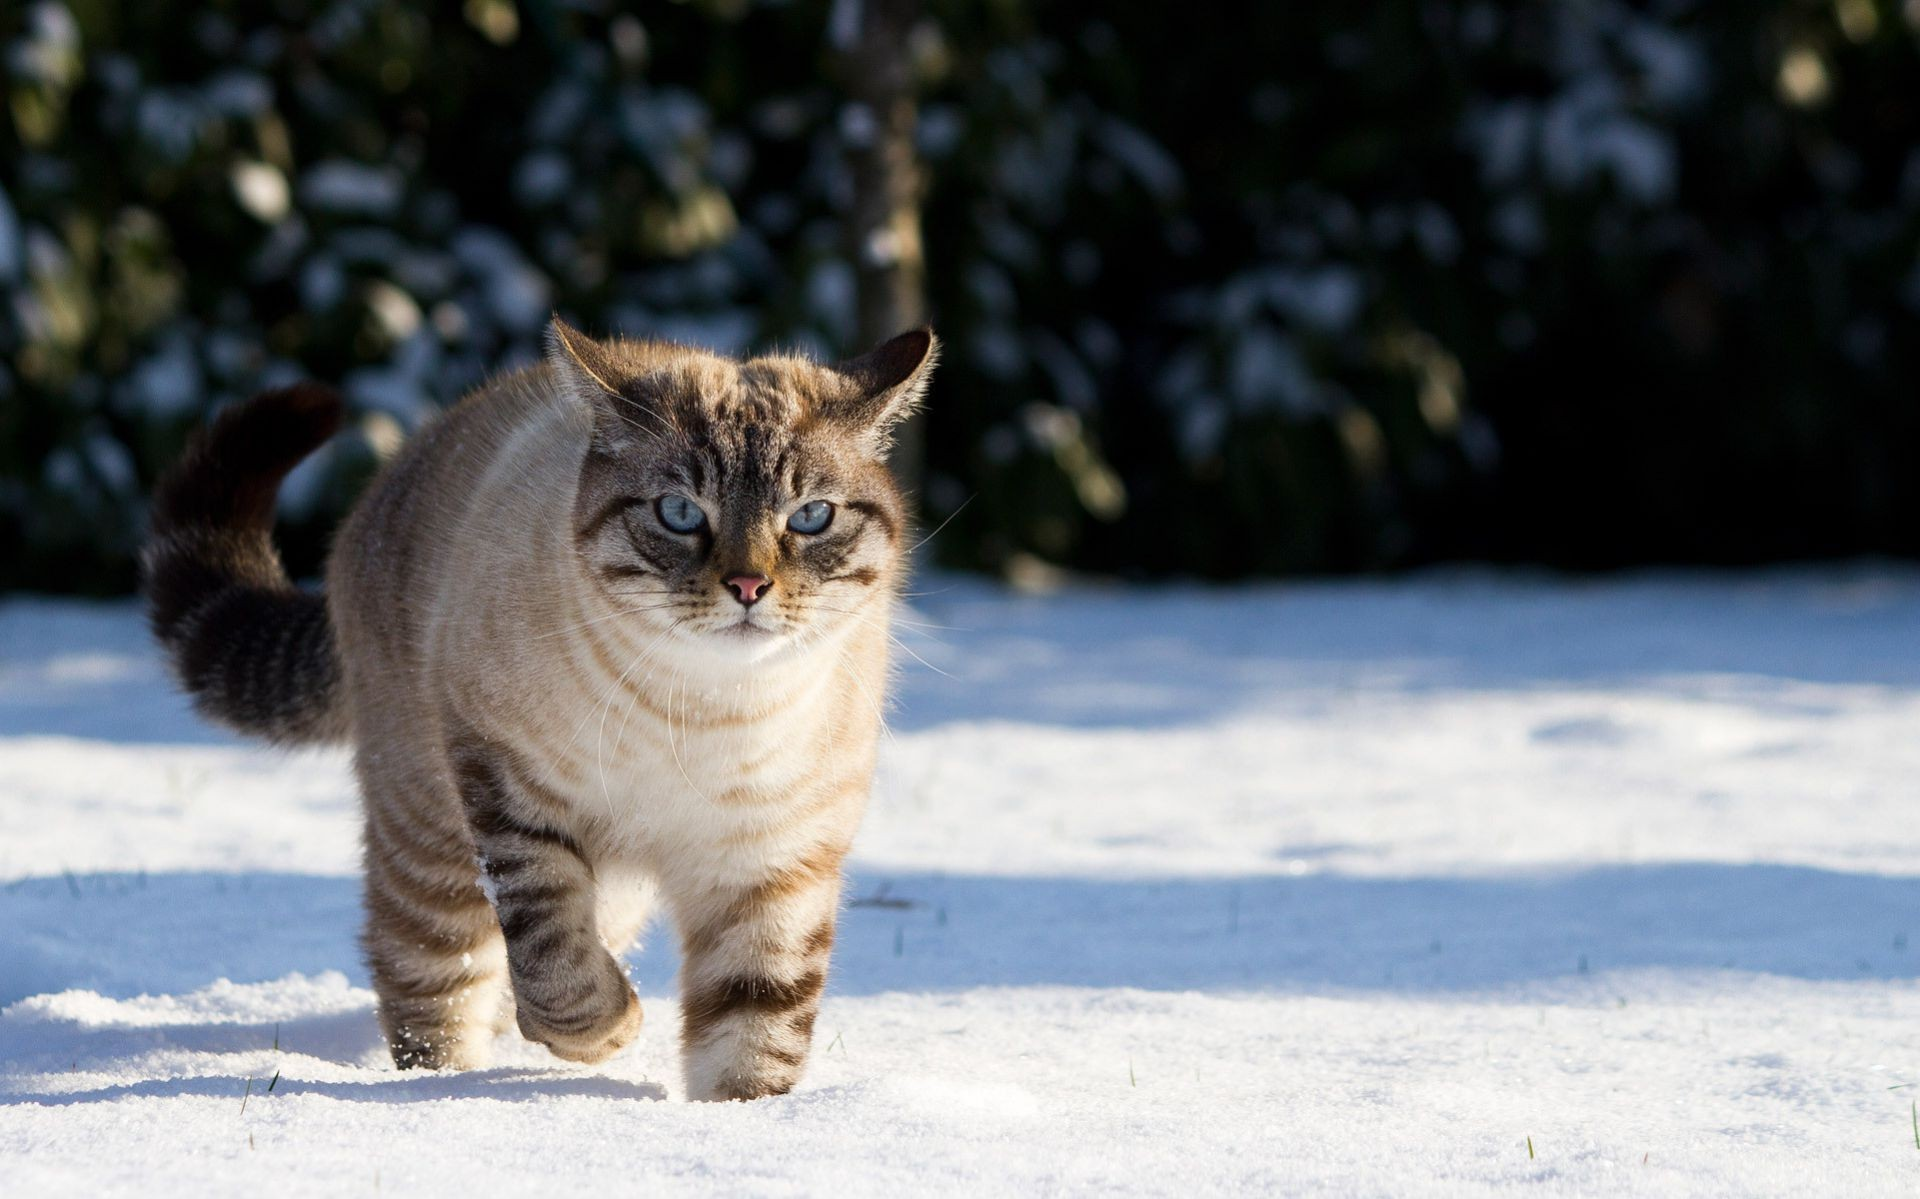 cats mammal cat winter portrait snow pet one animal outdoors nature cute